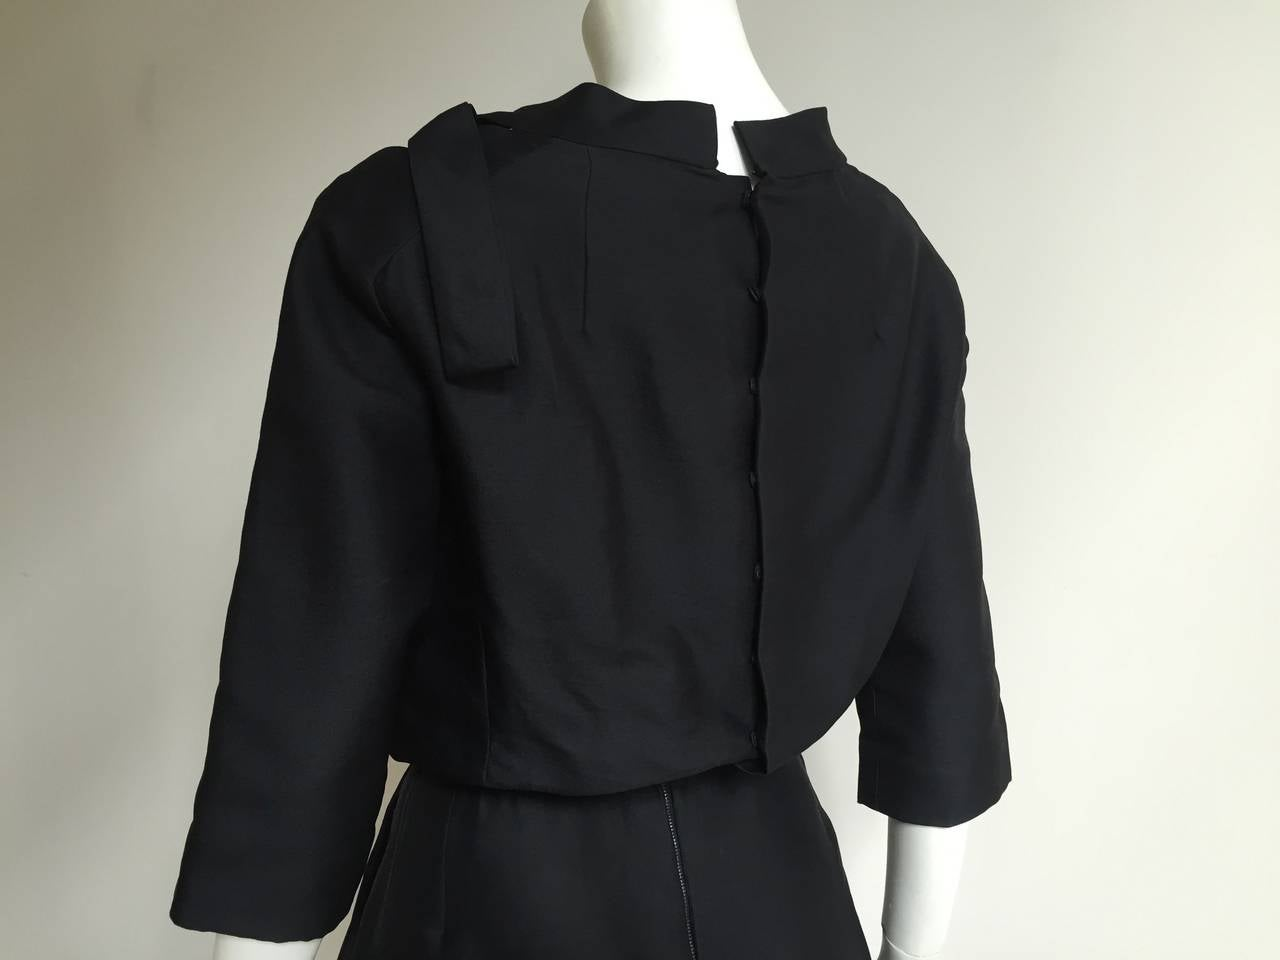 Dior 1950s Black Silk Evening Dress With Pockets Size 6. 6